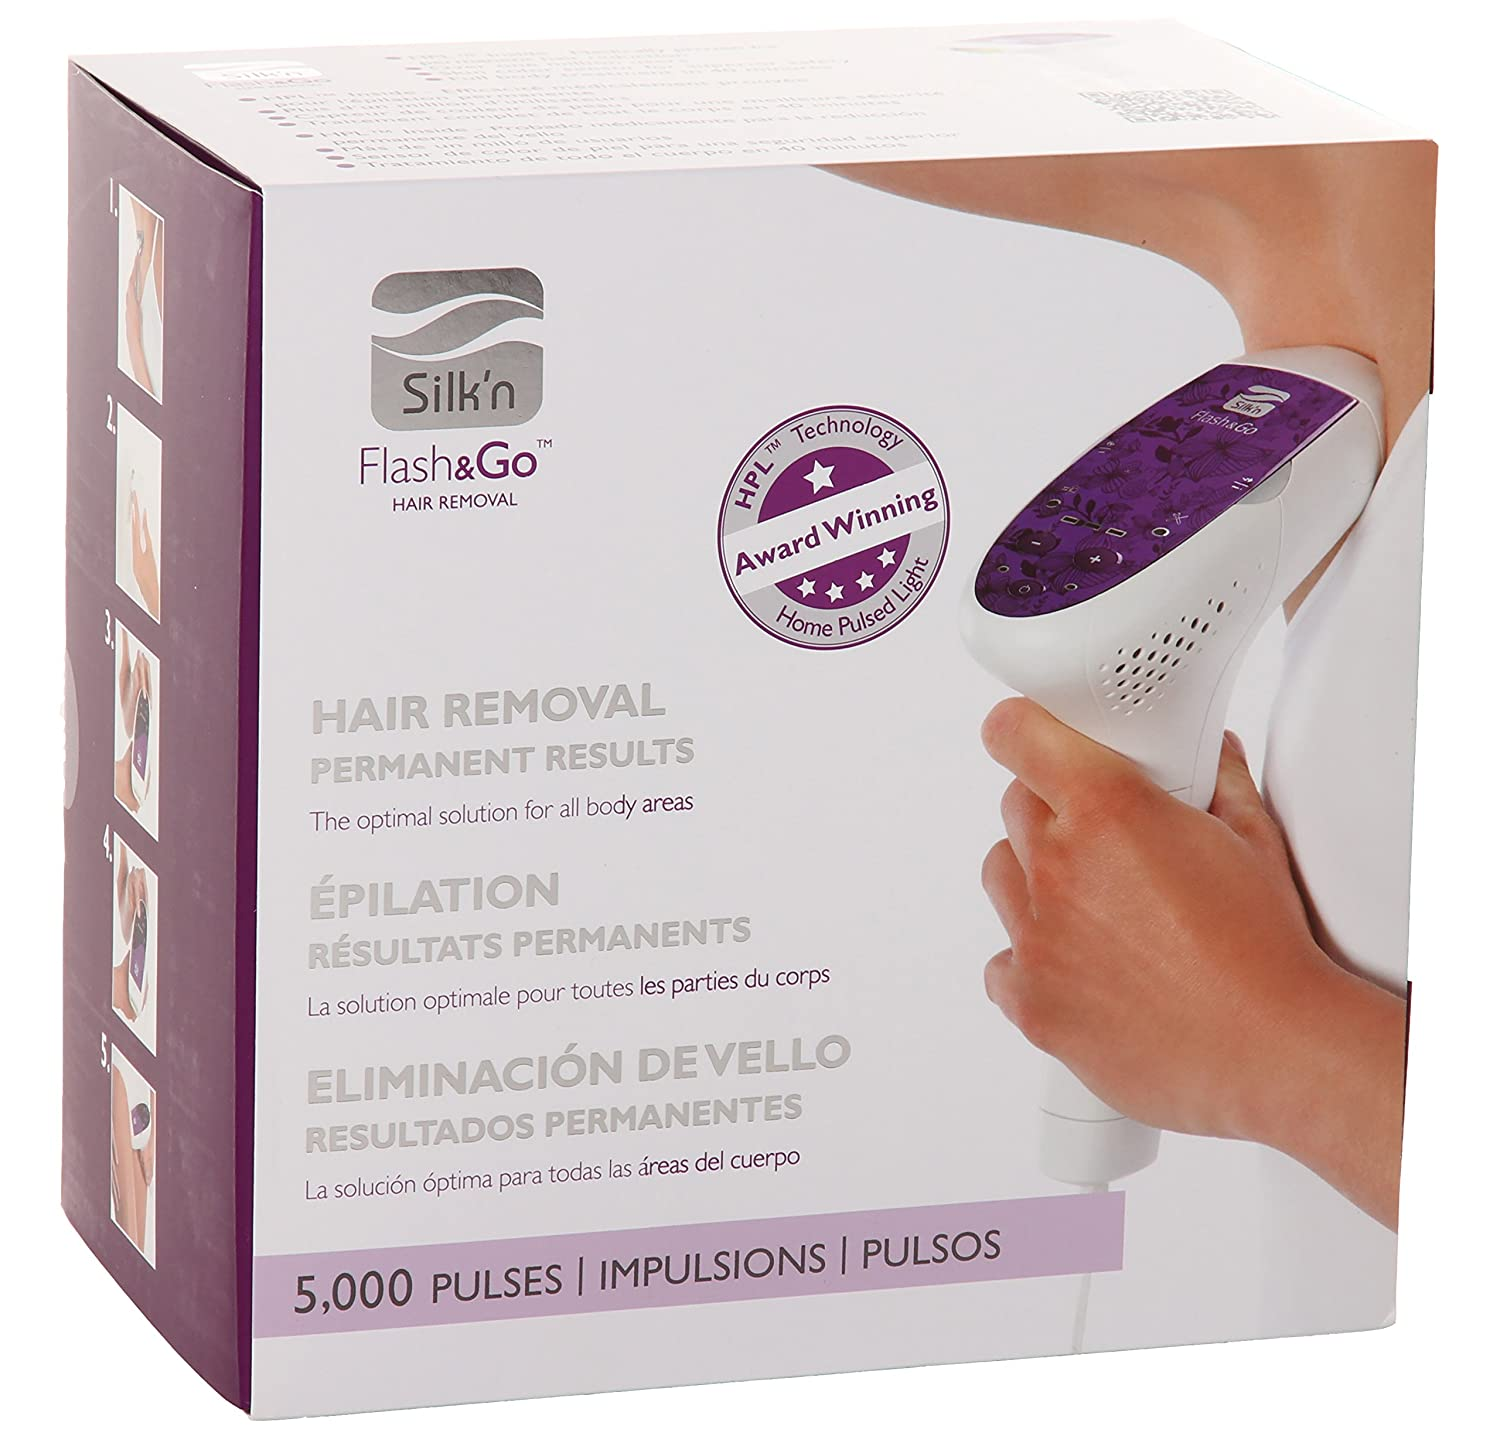 Silk'n Flash&Go - At Home Permanent Hair Removal Device for Women and Men -  5,000 Pulses